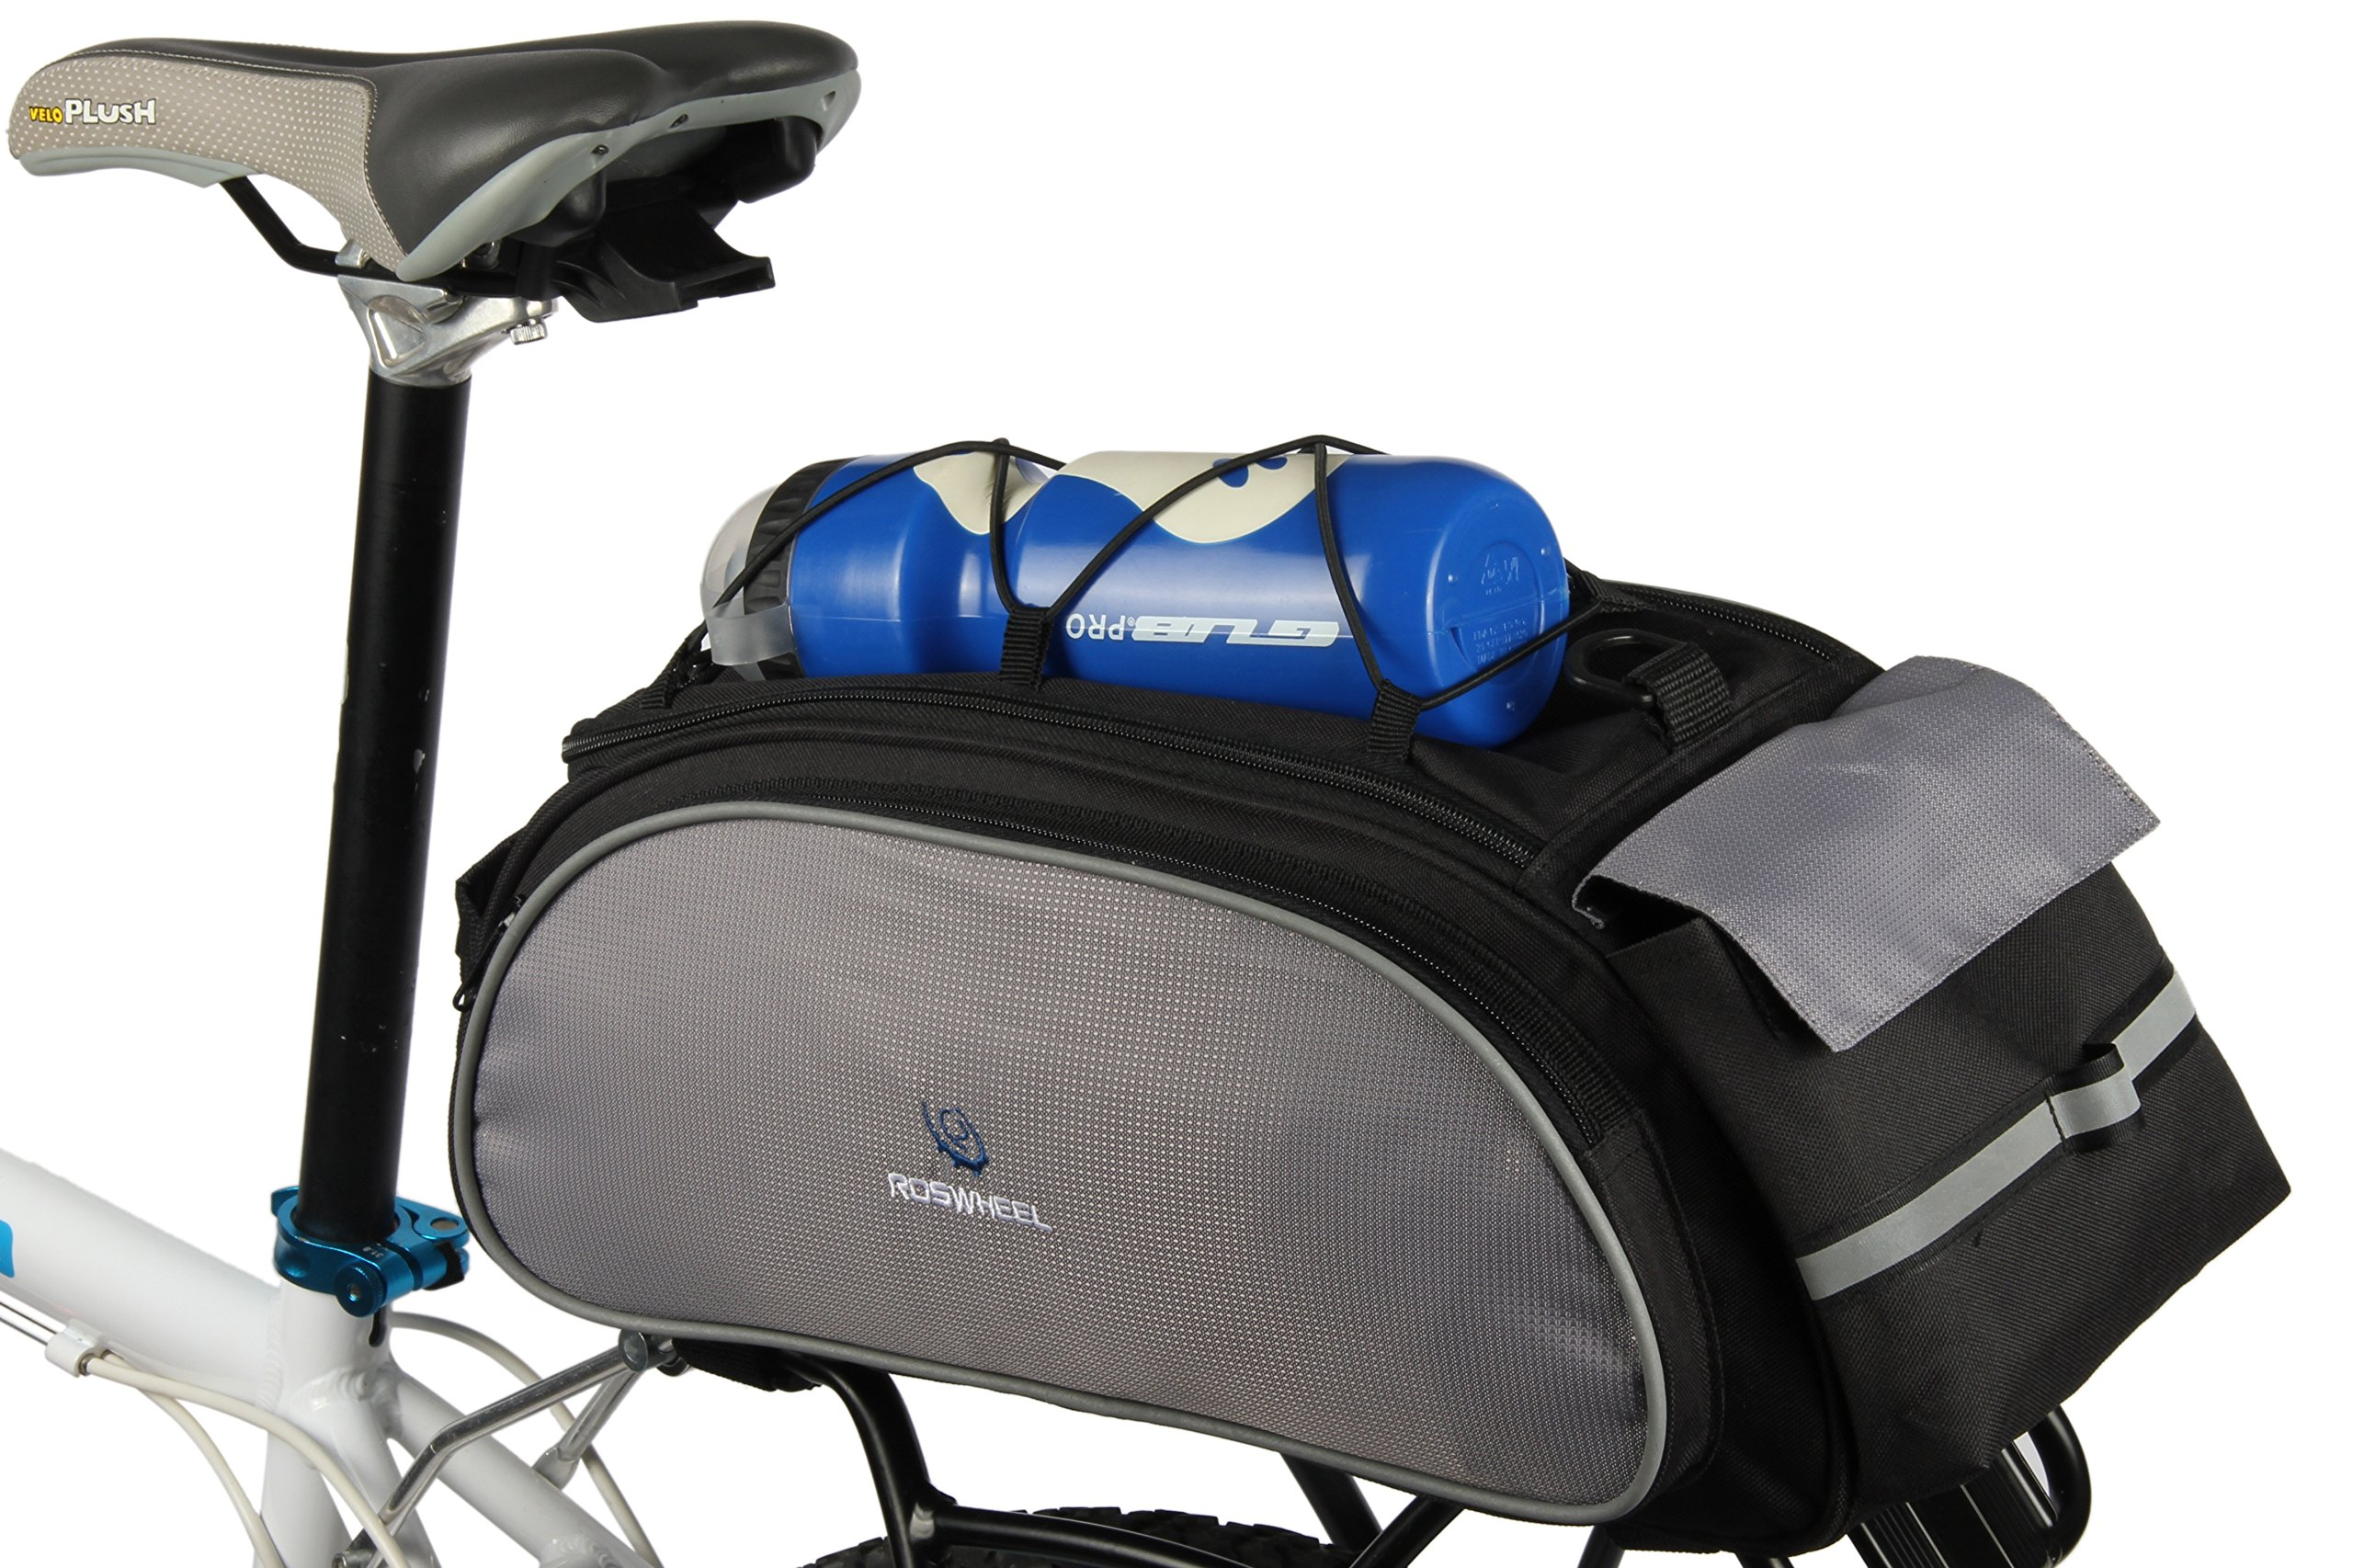 Best Fit For U Roswheel Bicycle Cycling Bike Saddle Rack Seat Cargo Bag Rear Pack Trunk Pannier Handbag Blue Outdoor Traveling New(Black) by SunbowStar (Image #3)